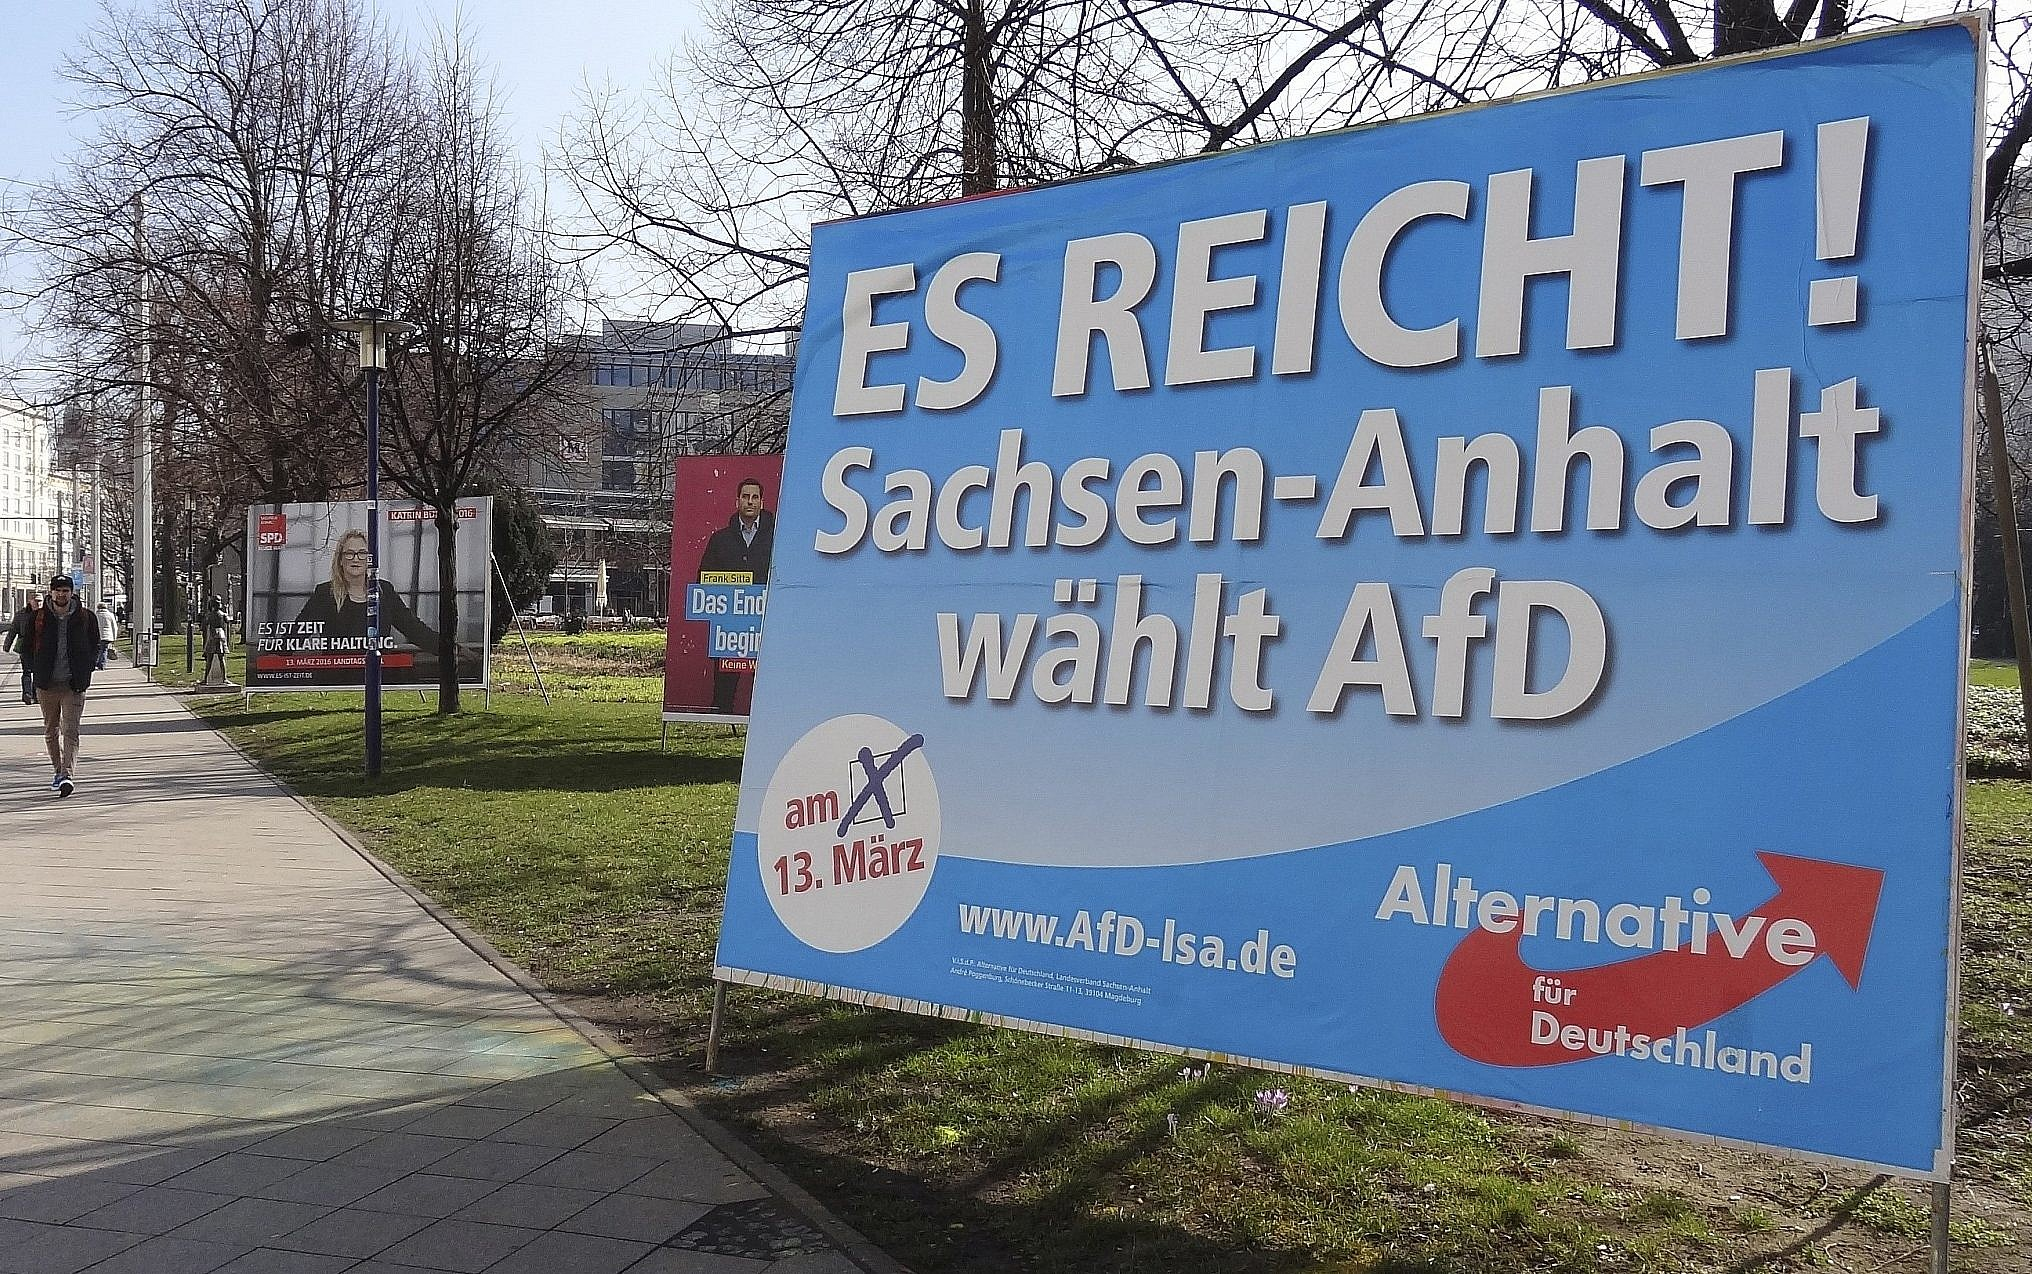 German politician converts to Islam, quits AfD party